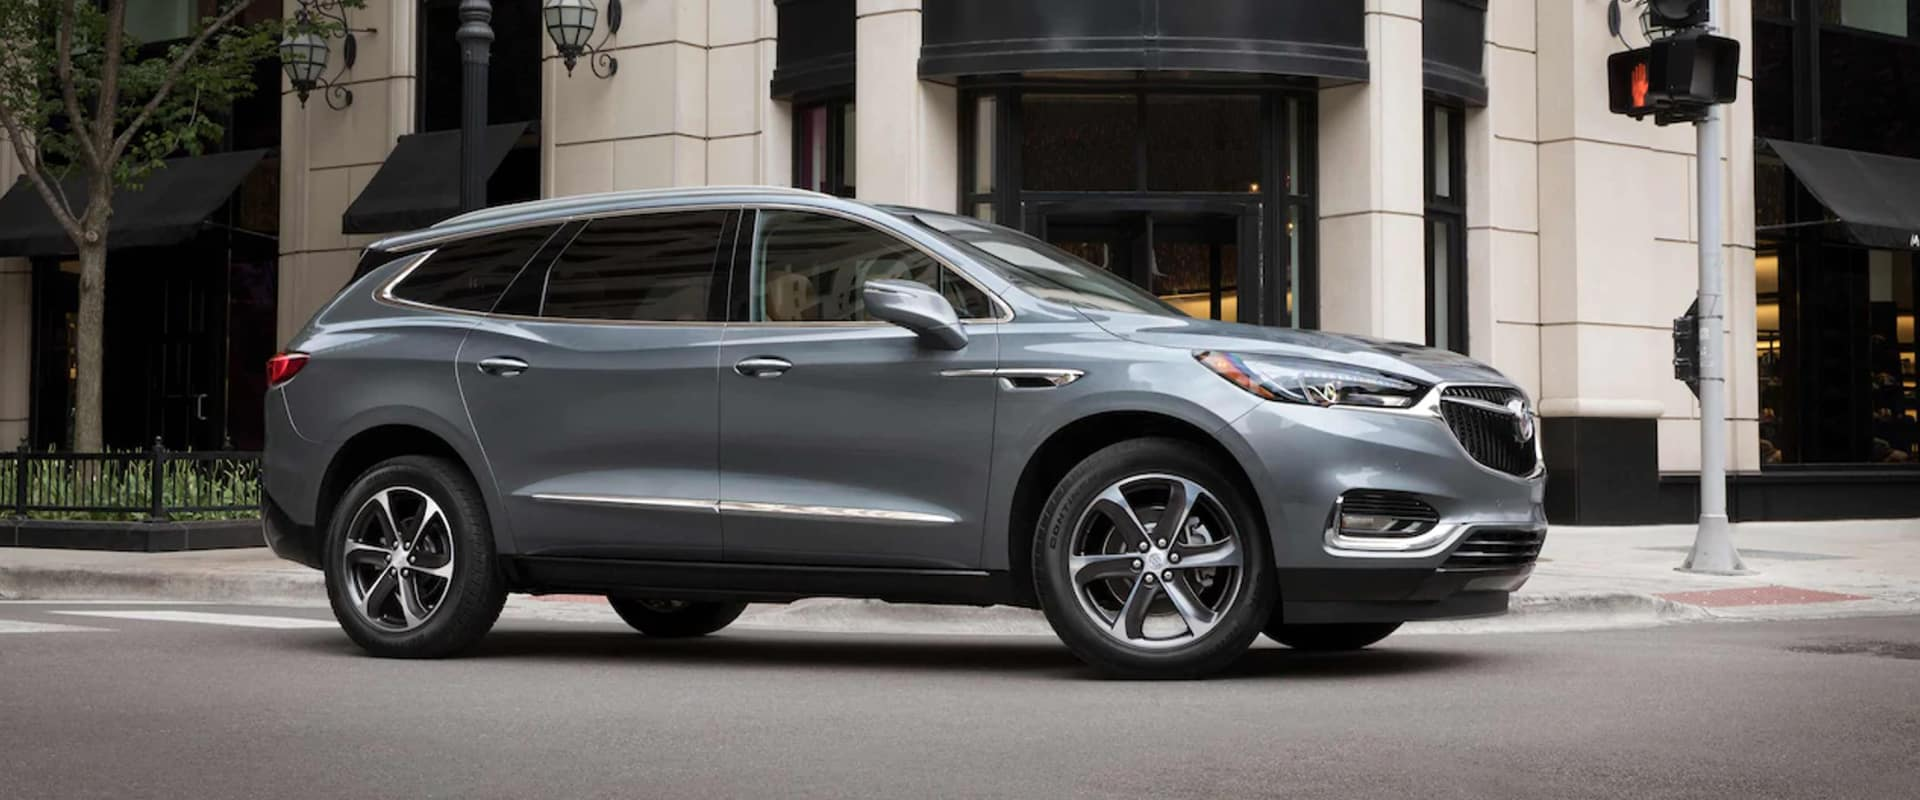 2021 Buick Enclave in St. Louis